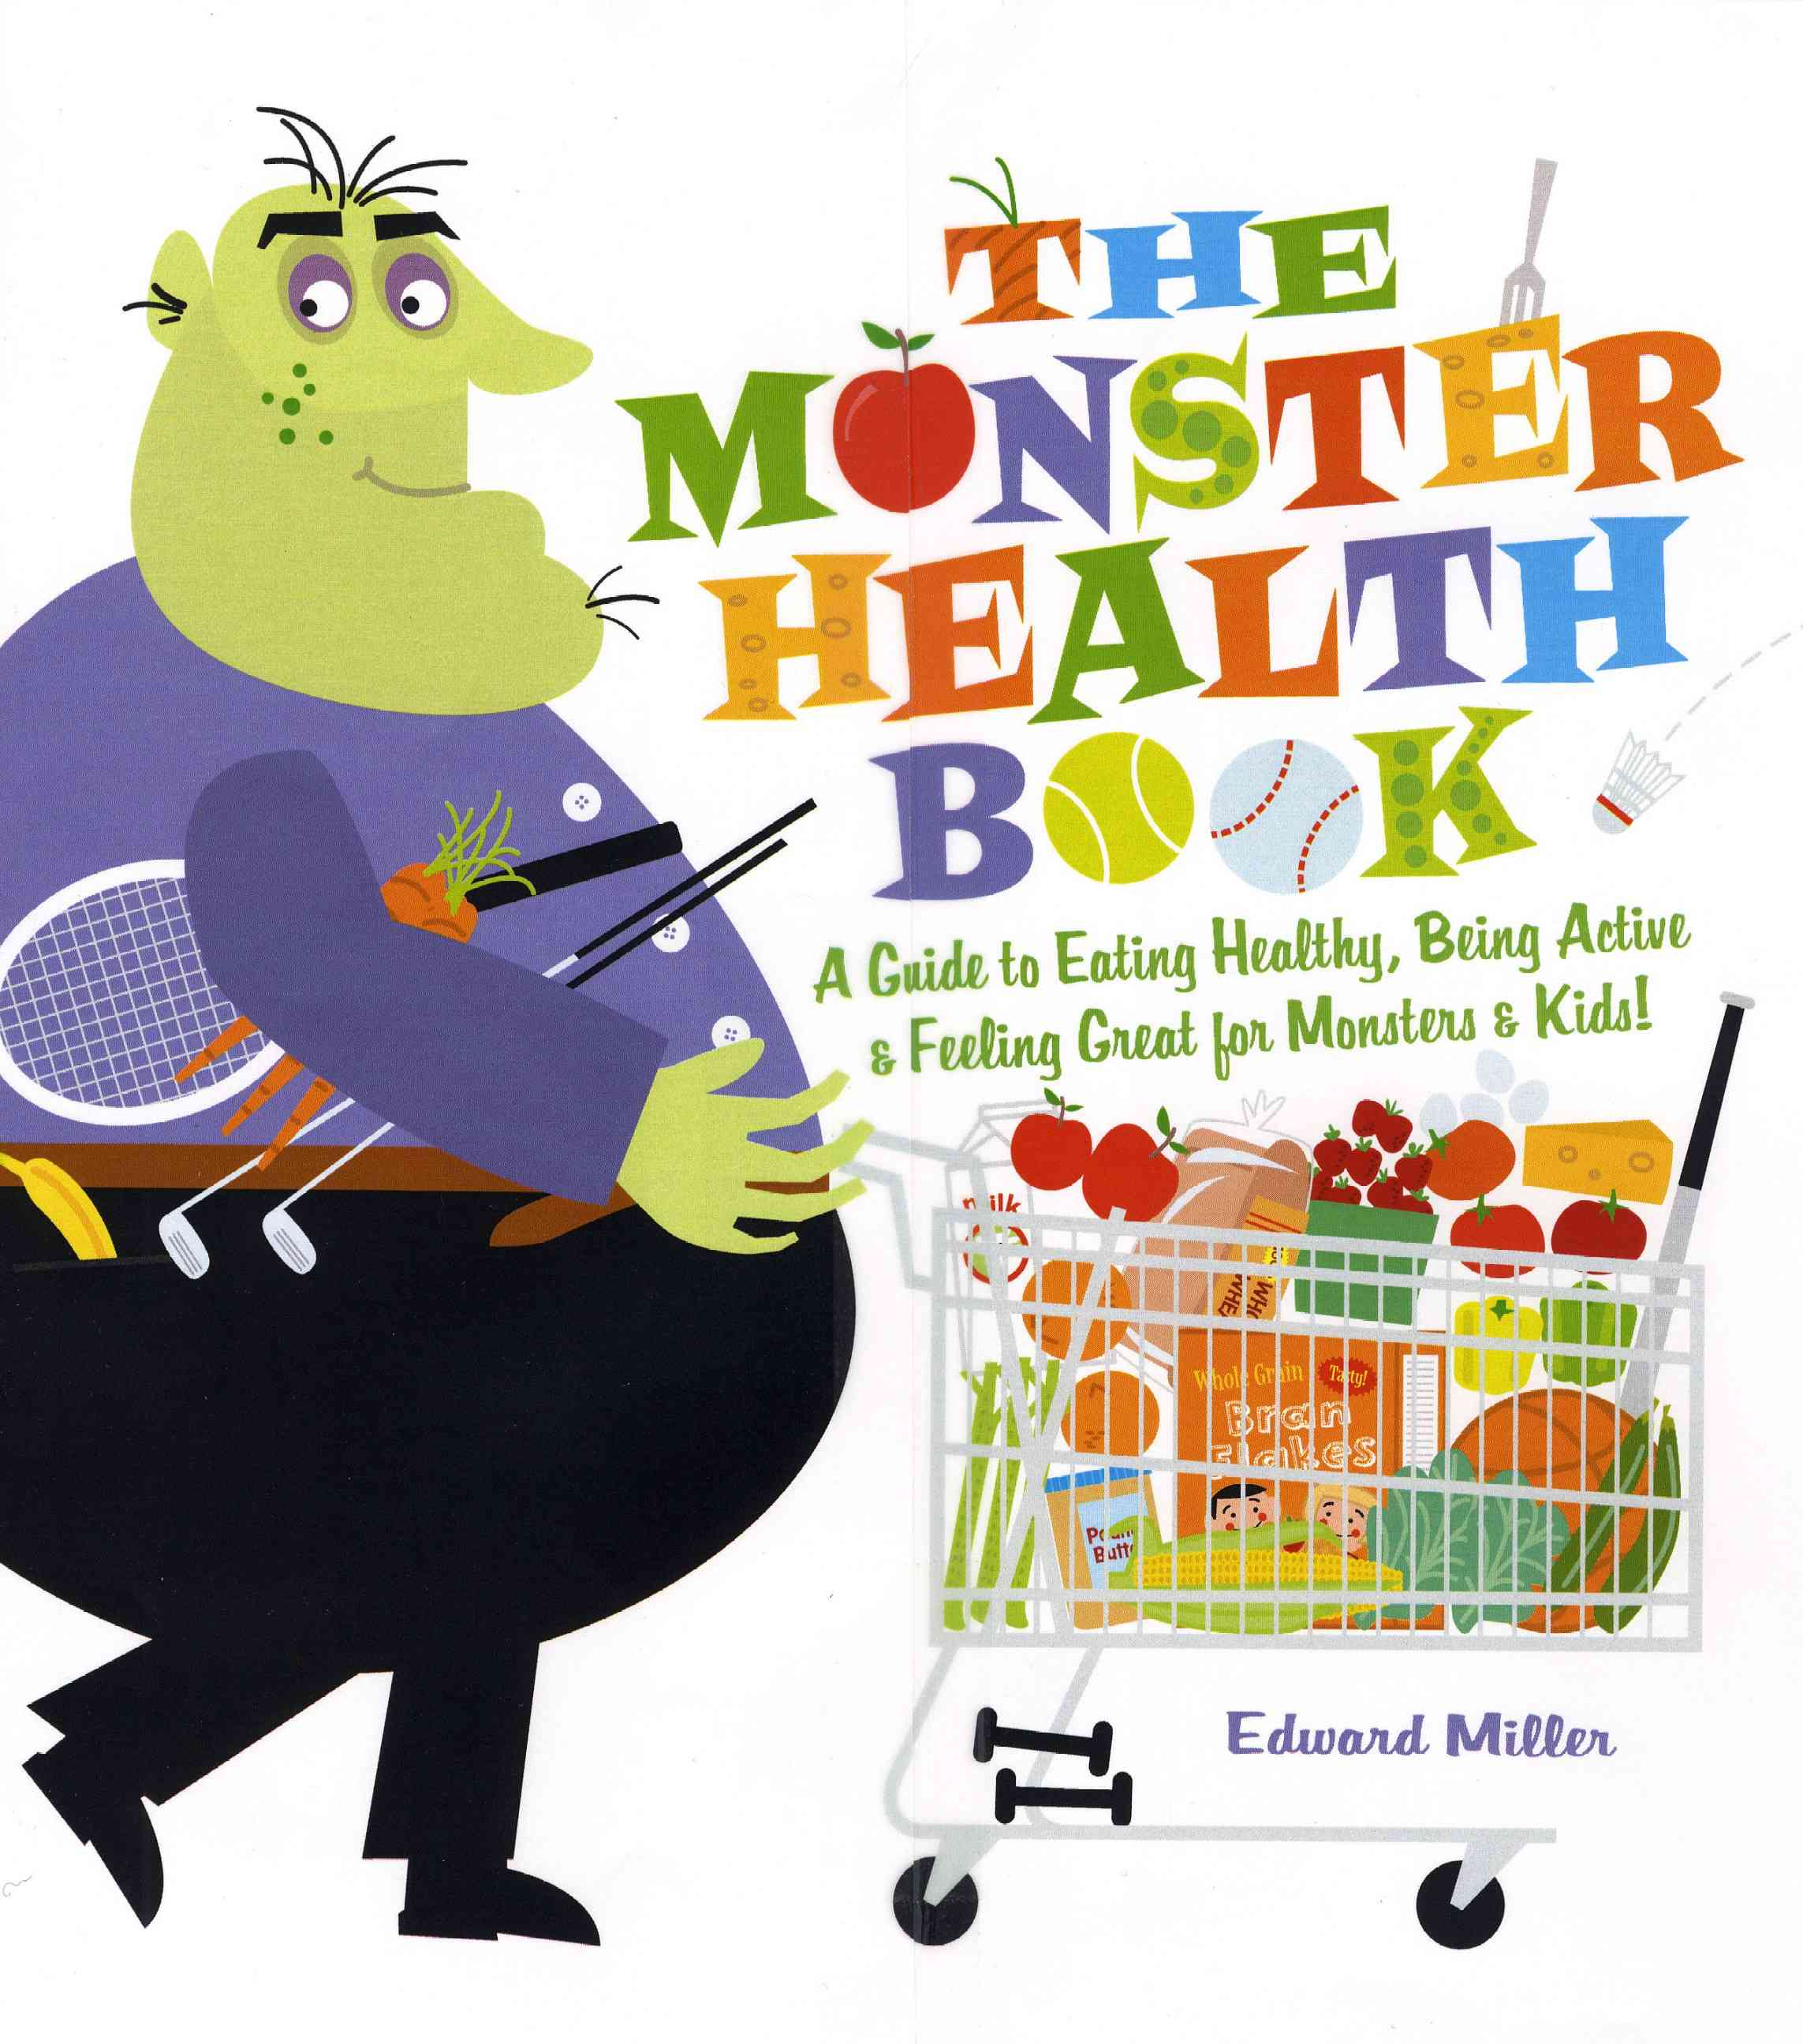 The Monster Health Book: A Guide to Eating Healthy, Being Active, & Feeling Great for Monsters & Kids! (Hardcover)